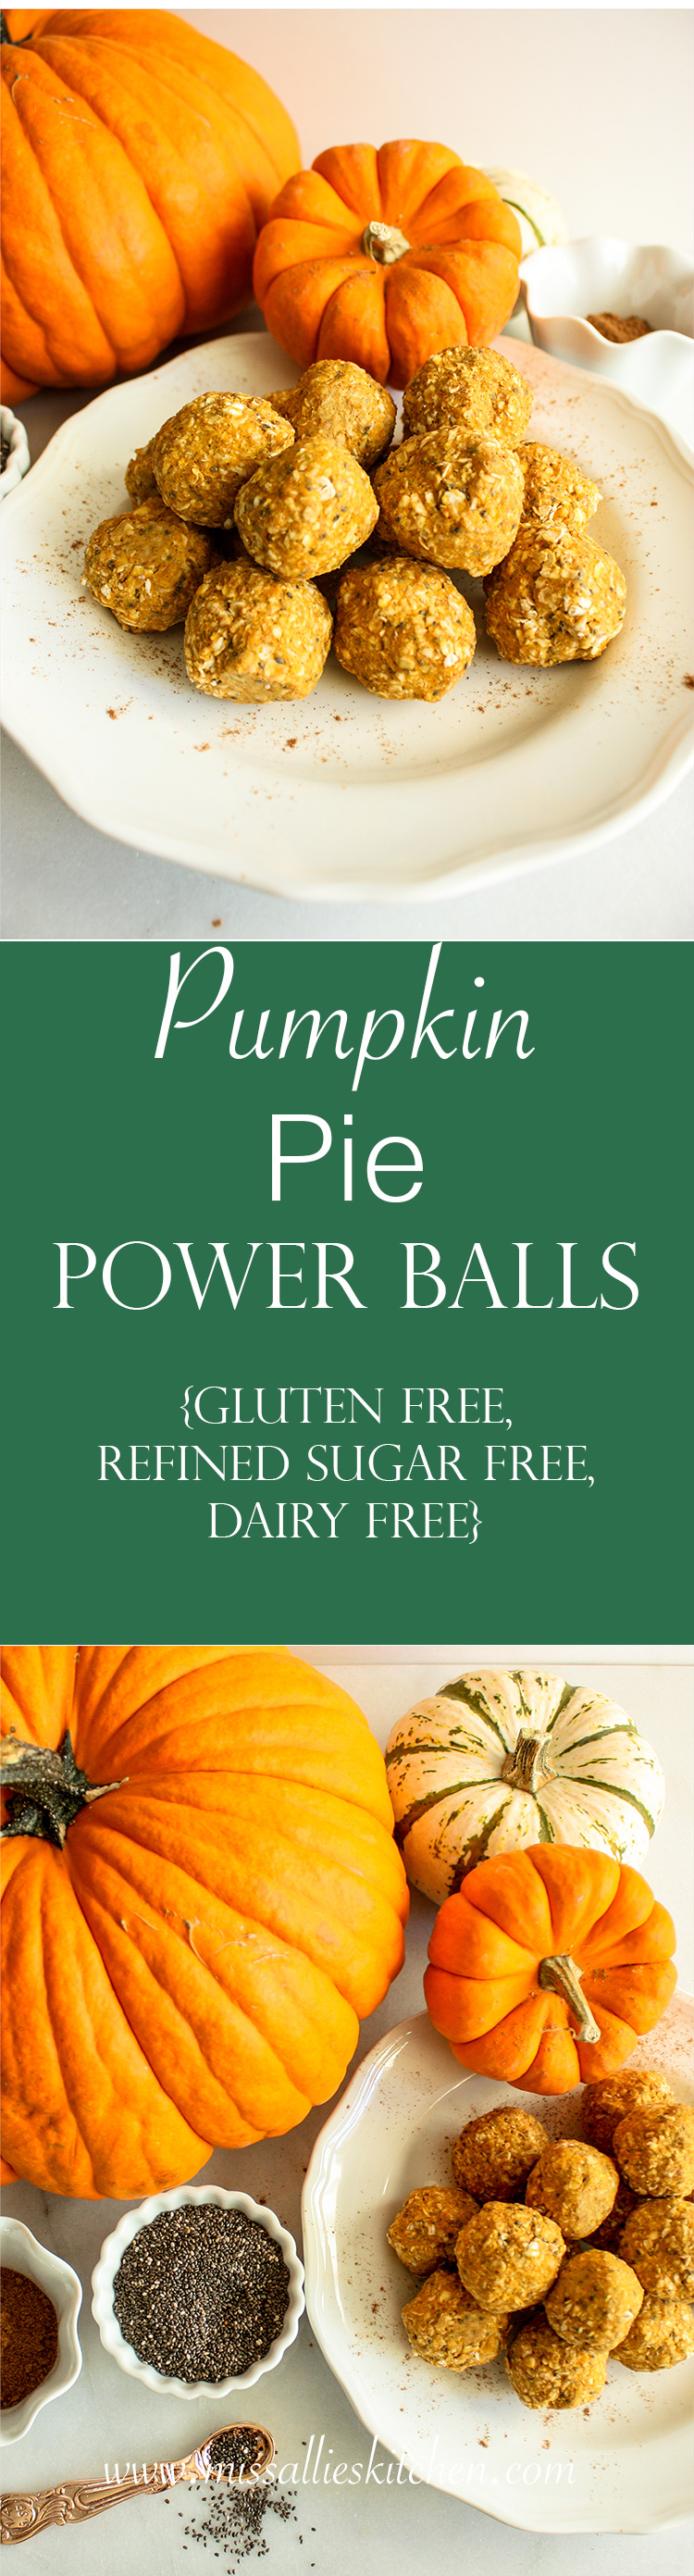 Pumpkin Pie Power Balls - a powerful pumpkin snack to help you tackle the day ahead! Gluten free, dairy free, refined sugar free & no bake!